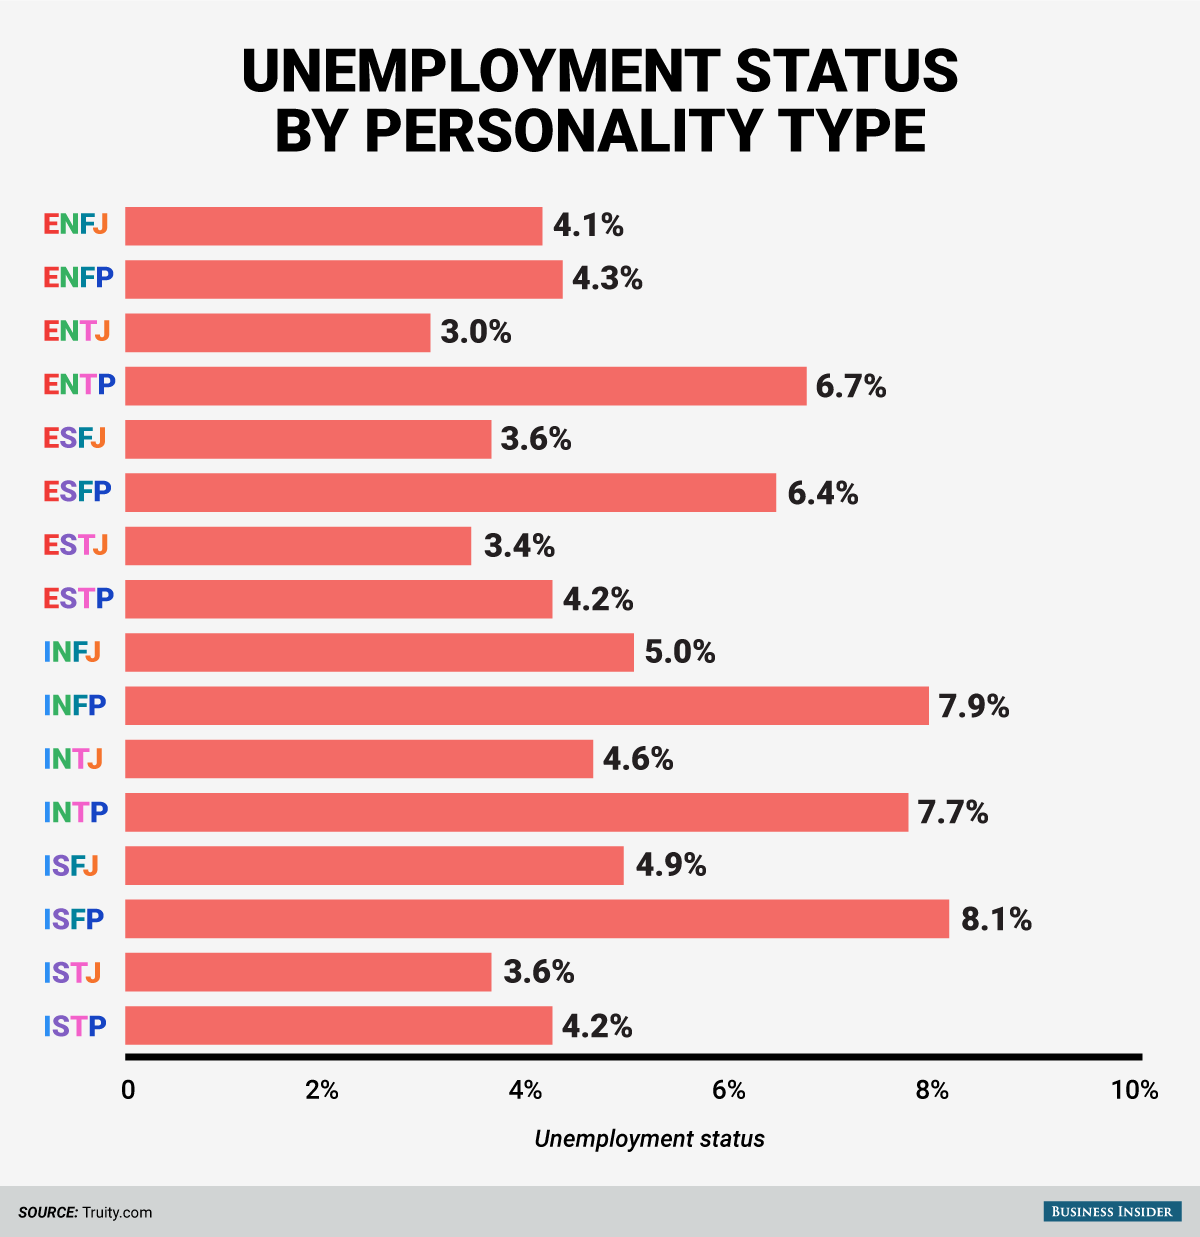 BI_Graphics_.Personality types unemployment